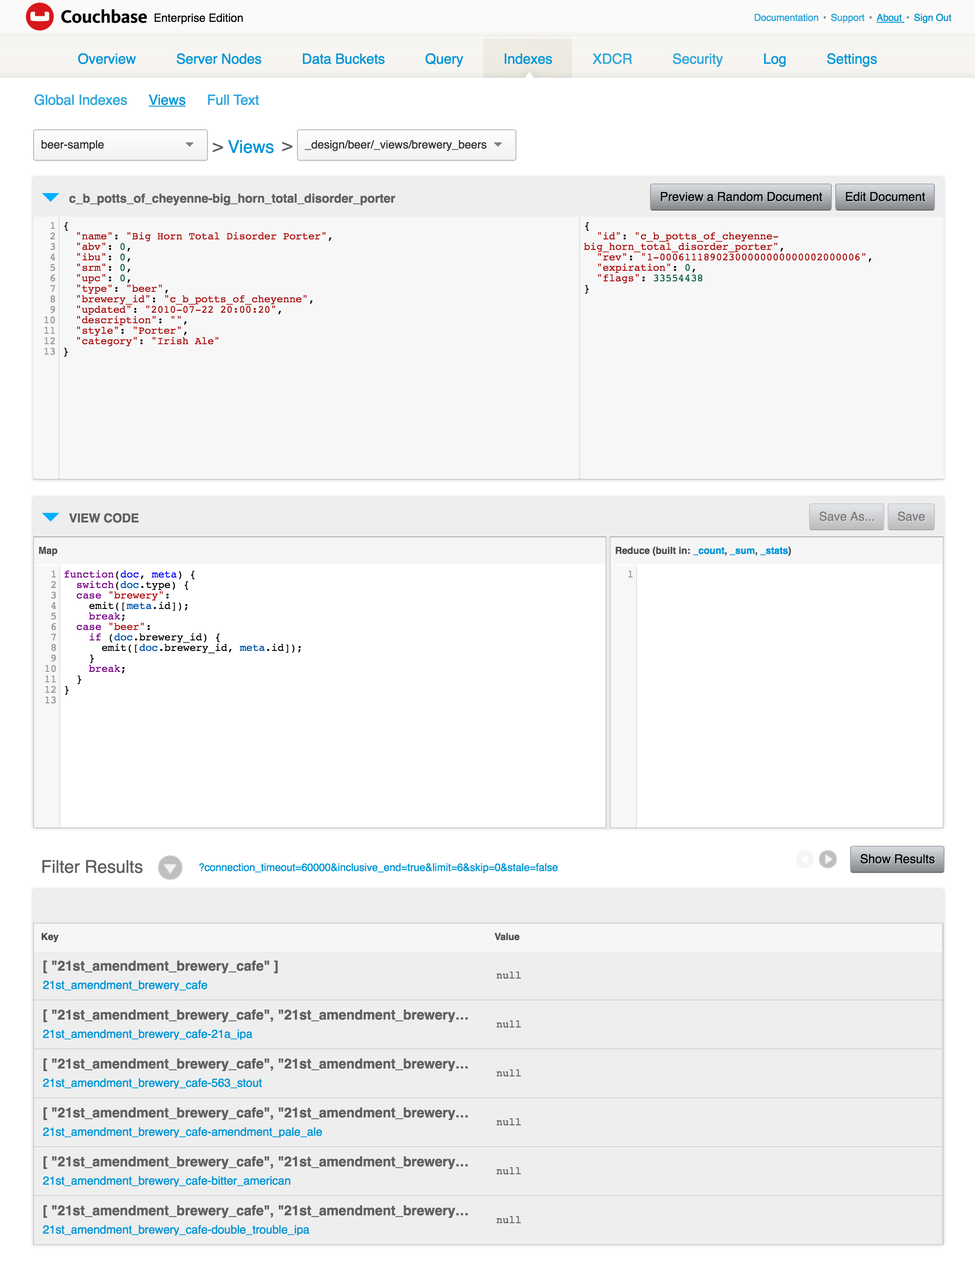 Couchbase Server View Sample